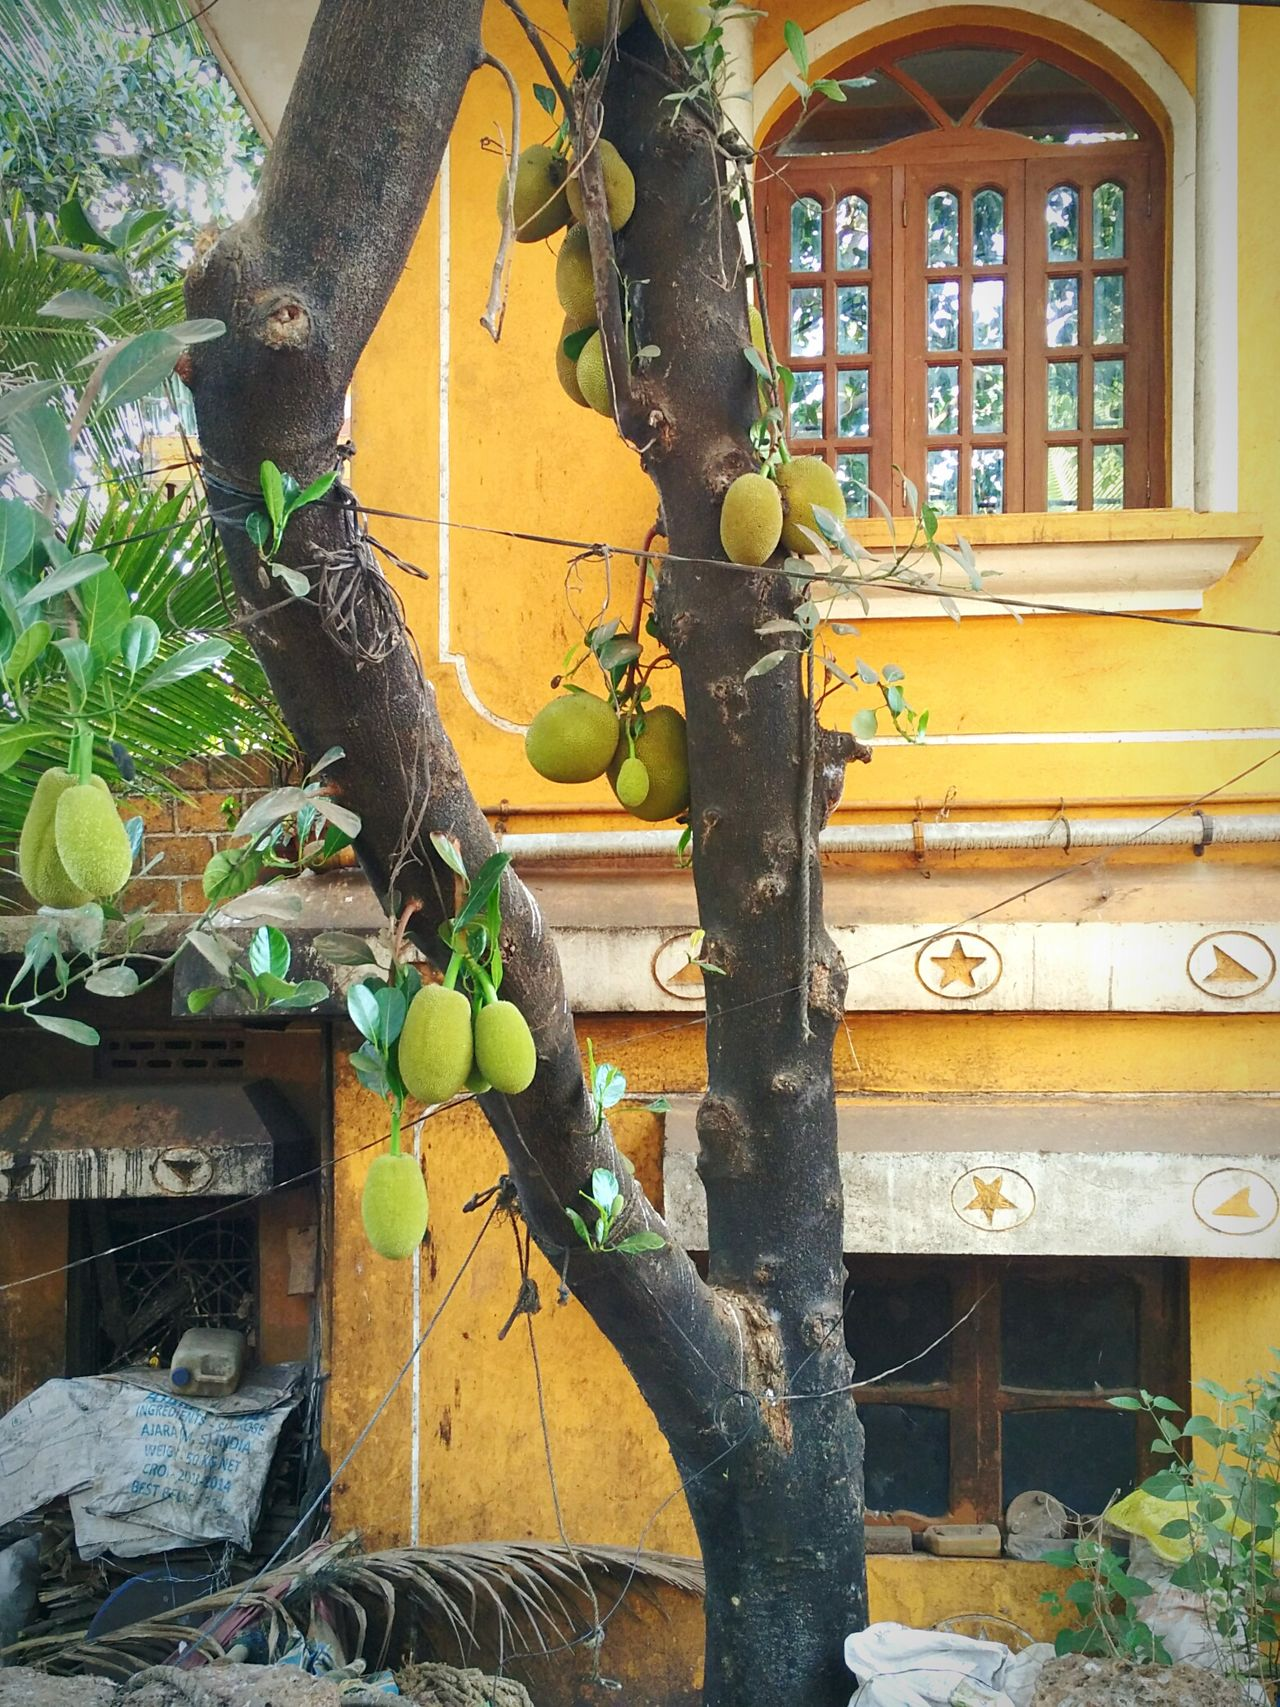 Jackfruit (panas) tree in front of an old Portuguese house in Goa. Jackfruit Jackfruits Panas Rasaal Jackfruit Tree Old Old House Portuguese Architecture Goan Portuguese Goa Traditional Goan Culture Façade Street Photography Salcette Goenkar Weathered Building Exterior Typical Houses Typical Goa Tourism Go Goa Ponsul Portugese